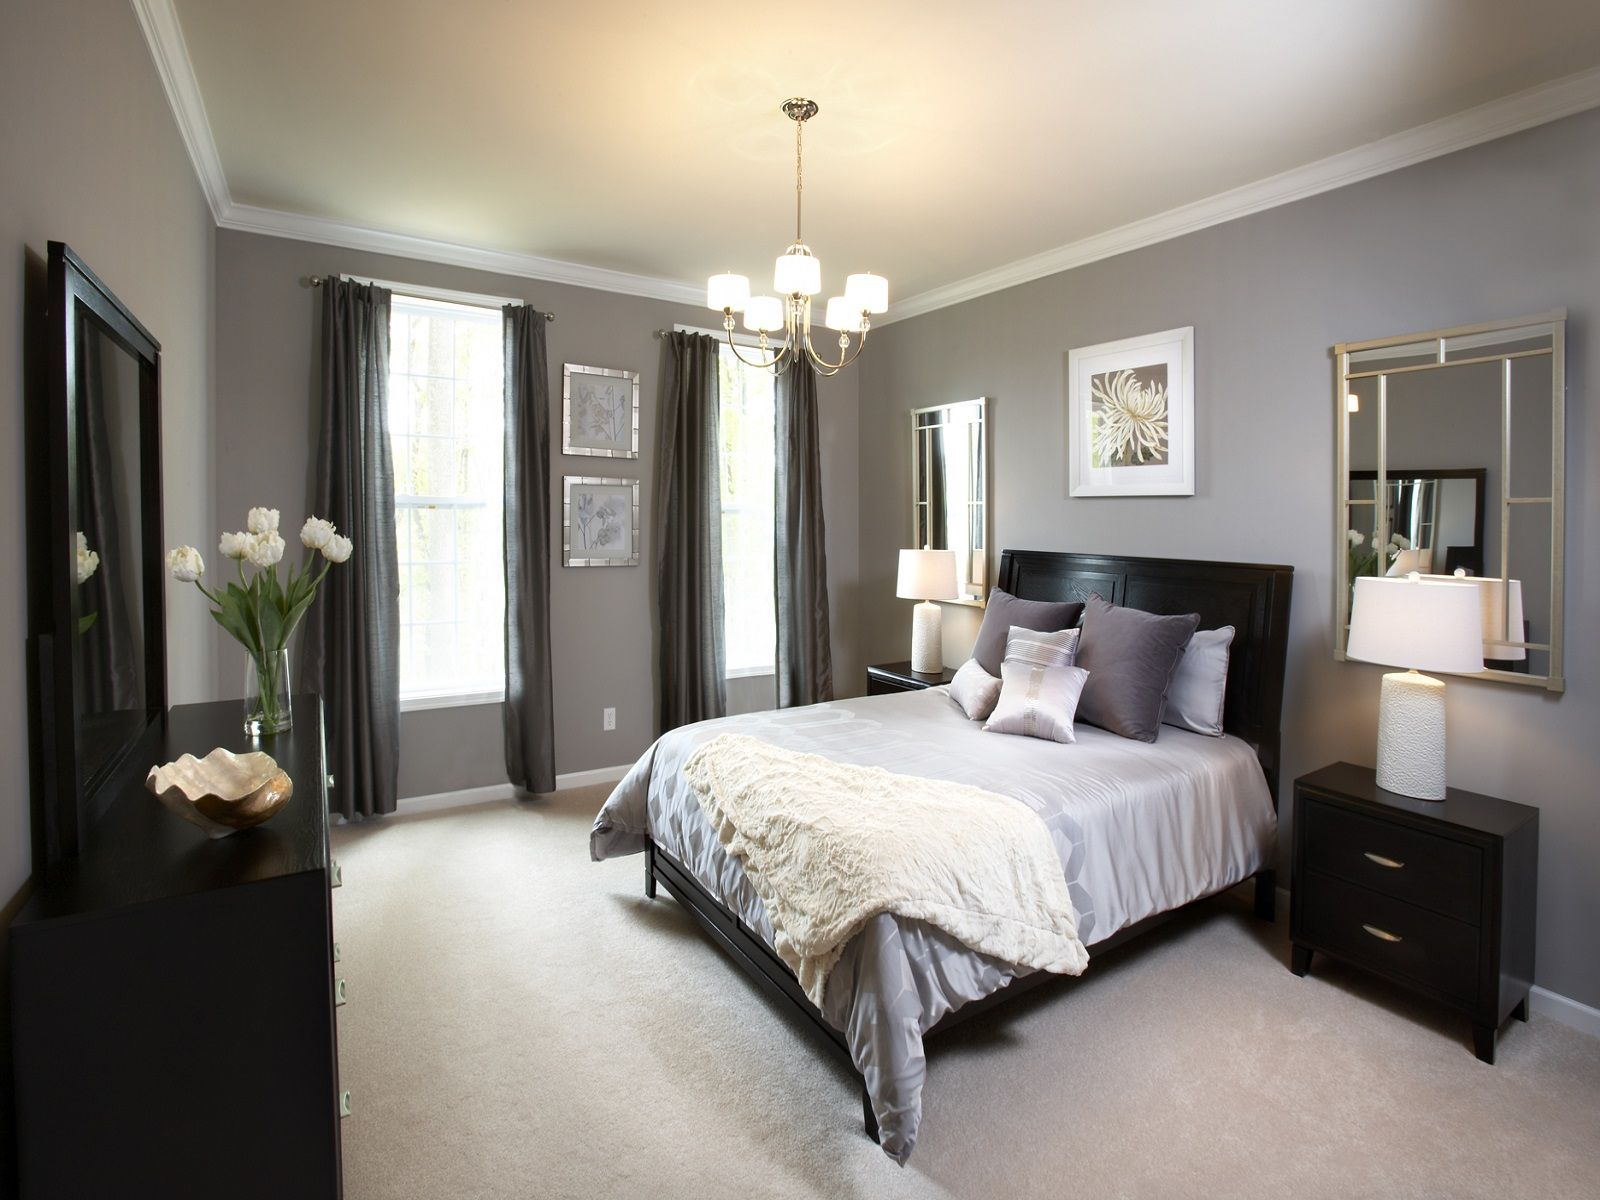 Paint Ideas For Living Room With Dark Furniture Indianapolis Master Bedroom Colors Home Pinterest 41 Images Amusing Color Idea Ambito Co